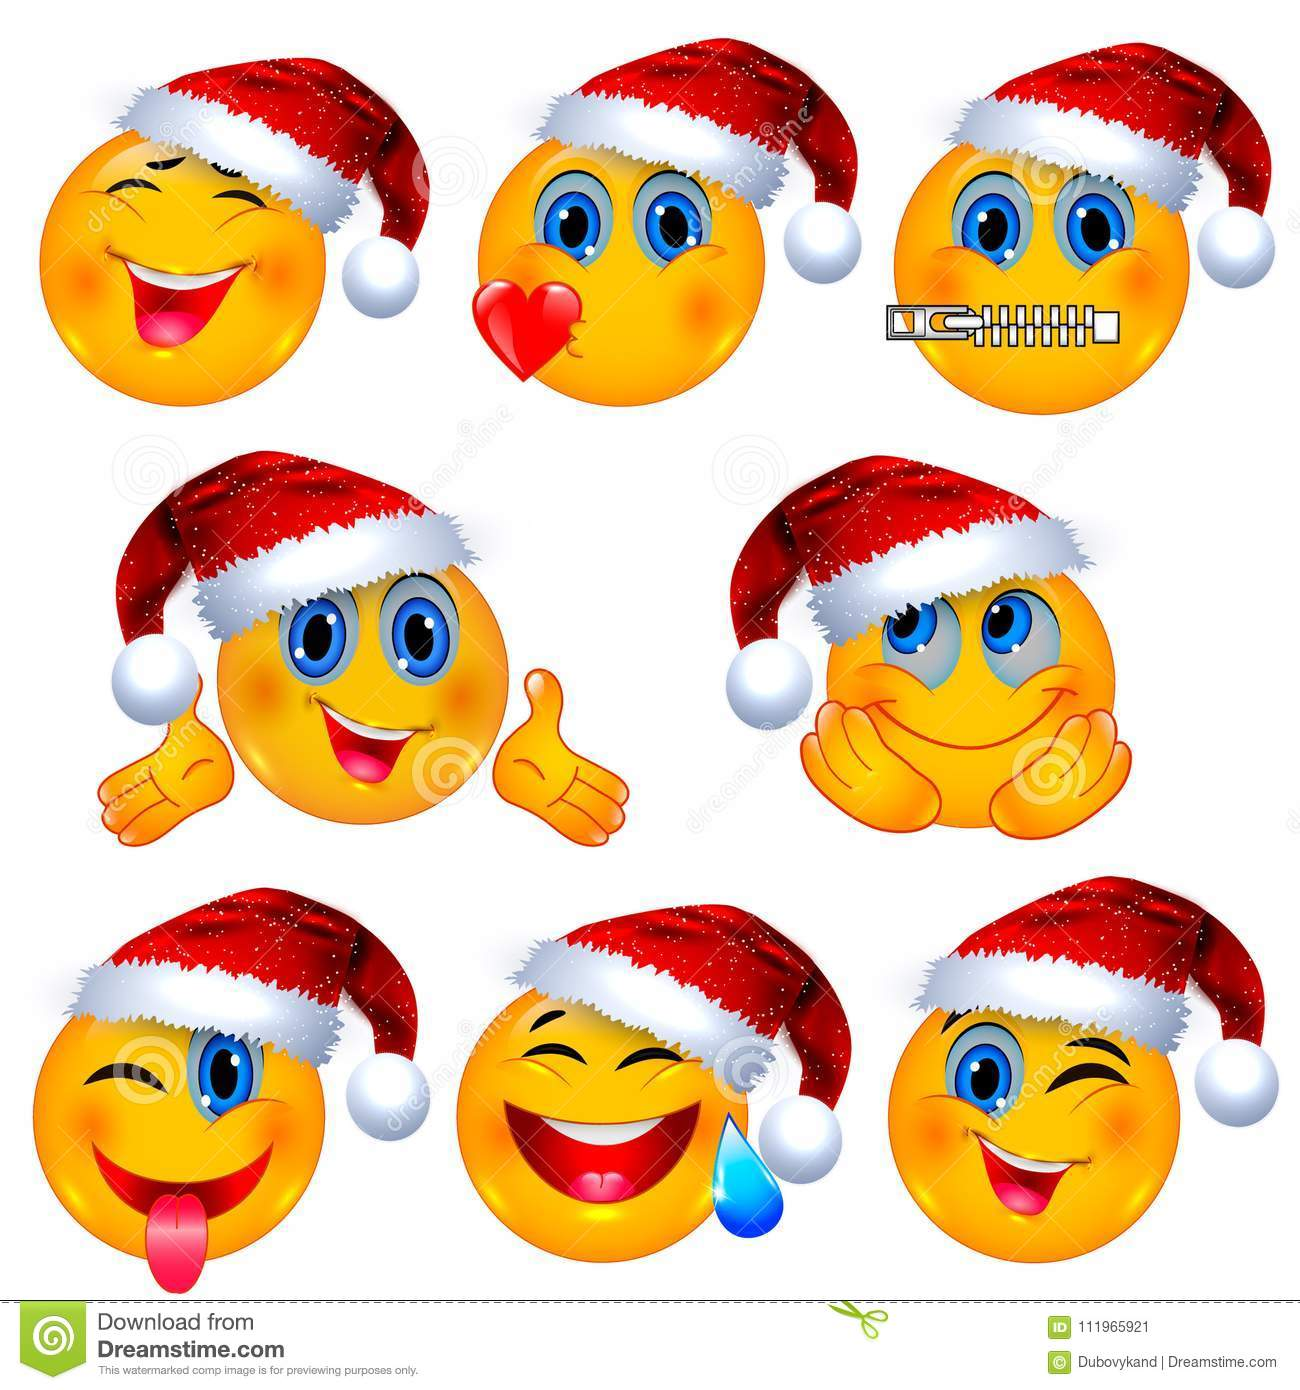 3D Smiley Faces With Red Santa Hat On  Vector Illustration